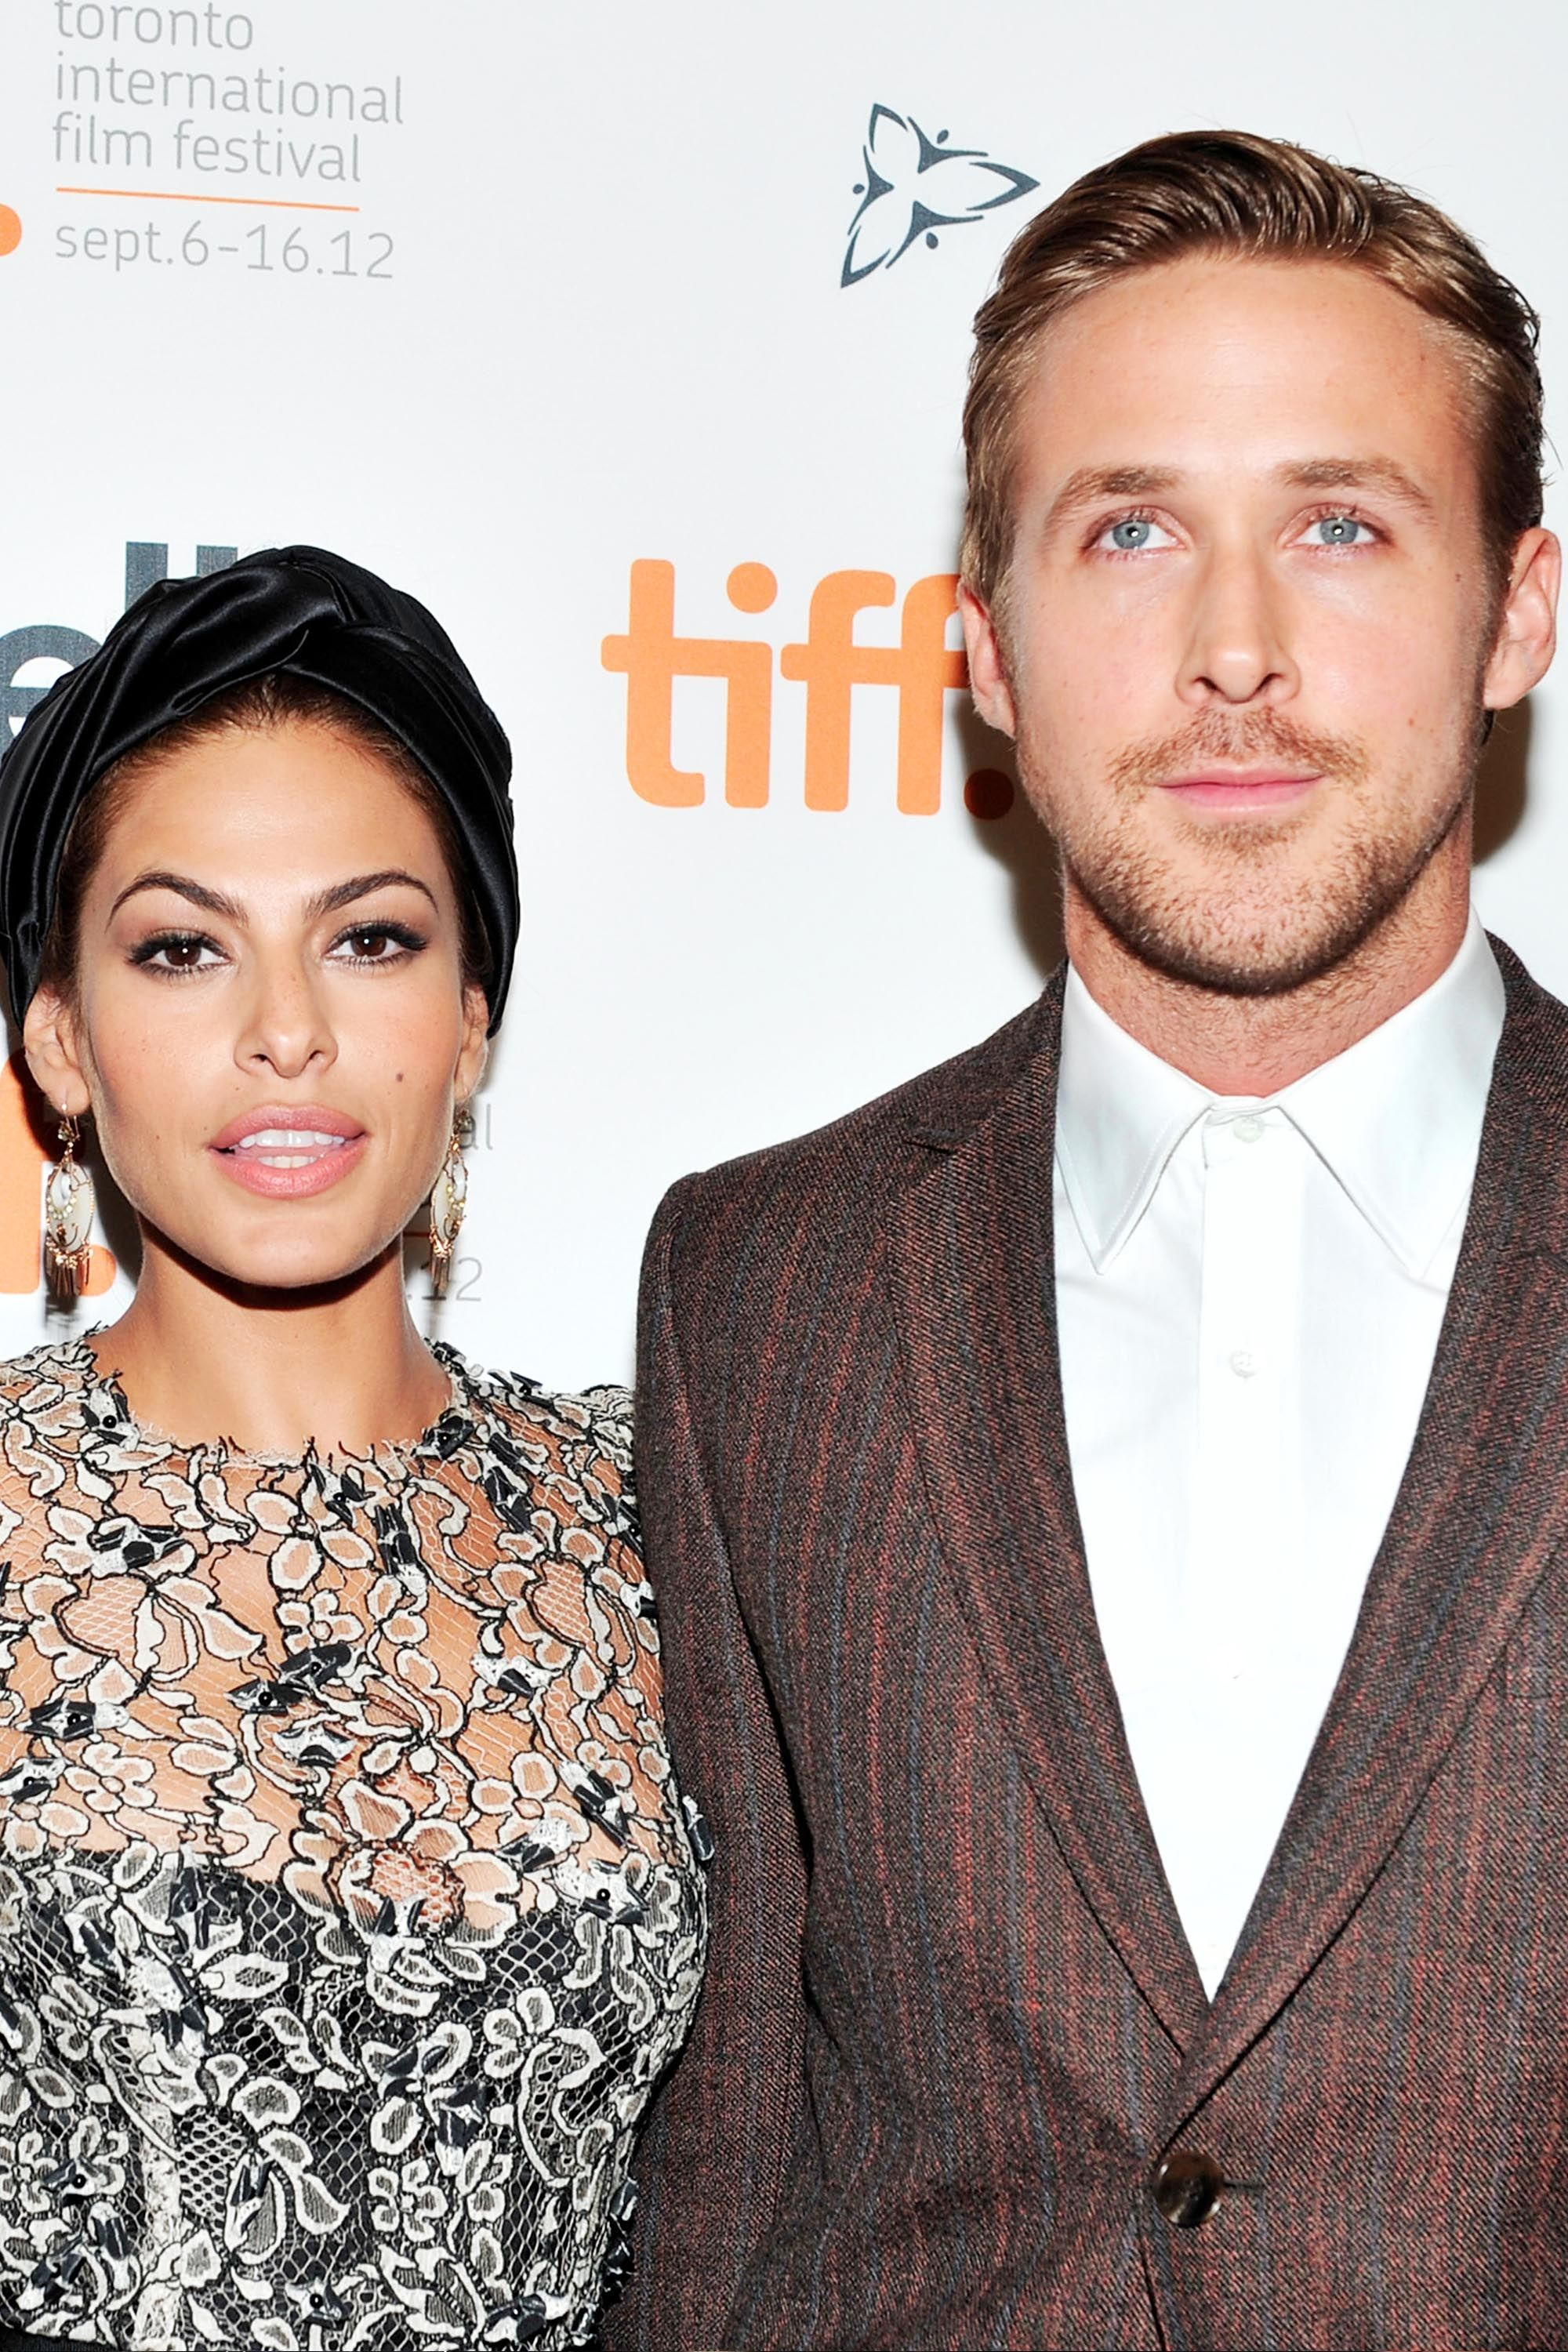 "<p><strong data-redactor-tag=""strong"" data-verified=""redactor""></strong><strong data-redactor-tag=""strong"" data-verified=""redactor"">Where they met: </strong>Sorry, ladies. Gosling met his romantic match in 2011 when he worked with Mendes on <em data-redactor-tag=""em"" data-verified=""redactor"">The Place Beyond the Pines</em>.</p><p><strong data-redactor-tag=""strong"" data-verified=""redactor"">Length of relationship:</strong> The pair have kept their relationship very, very private, but we know they met in 2011 and have since had two daughters, born in 2014 and 2016. Everything else is mostly a mystery with these two. </p><p><strong data-redactor-tag=""strong"" data-verified=""redactor"">Cutest moment: </strong>After the couple's first daughter was born, <a href=""http://www.eonline.com/news/721865/ryan-gosling-gushes-over-girlfriend-eva-mendes-i-know-that-i-m-with-the-person-i-m-supposed-to-be-with"" target=""_blank"">Gosling told</a><a href=""http://www.eonline.com/news/721865/ryan-gosling-gushes-over-girlfriend-eva-mendes-i-know-that-i-m-with-the-person-i-m-supposed-to-be-with""><em data-redactor-tag=""em"" data-verified=""redactor""> </em>E!</a> in a rare share, ""I know that I'm with the person I'm supposed to be with."" As for why? ""She's Eva Mendes,"" Gosling notes. ""There's nothing else I'm looking for.""</p>"